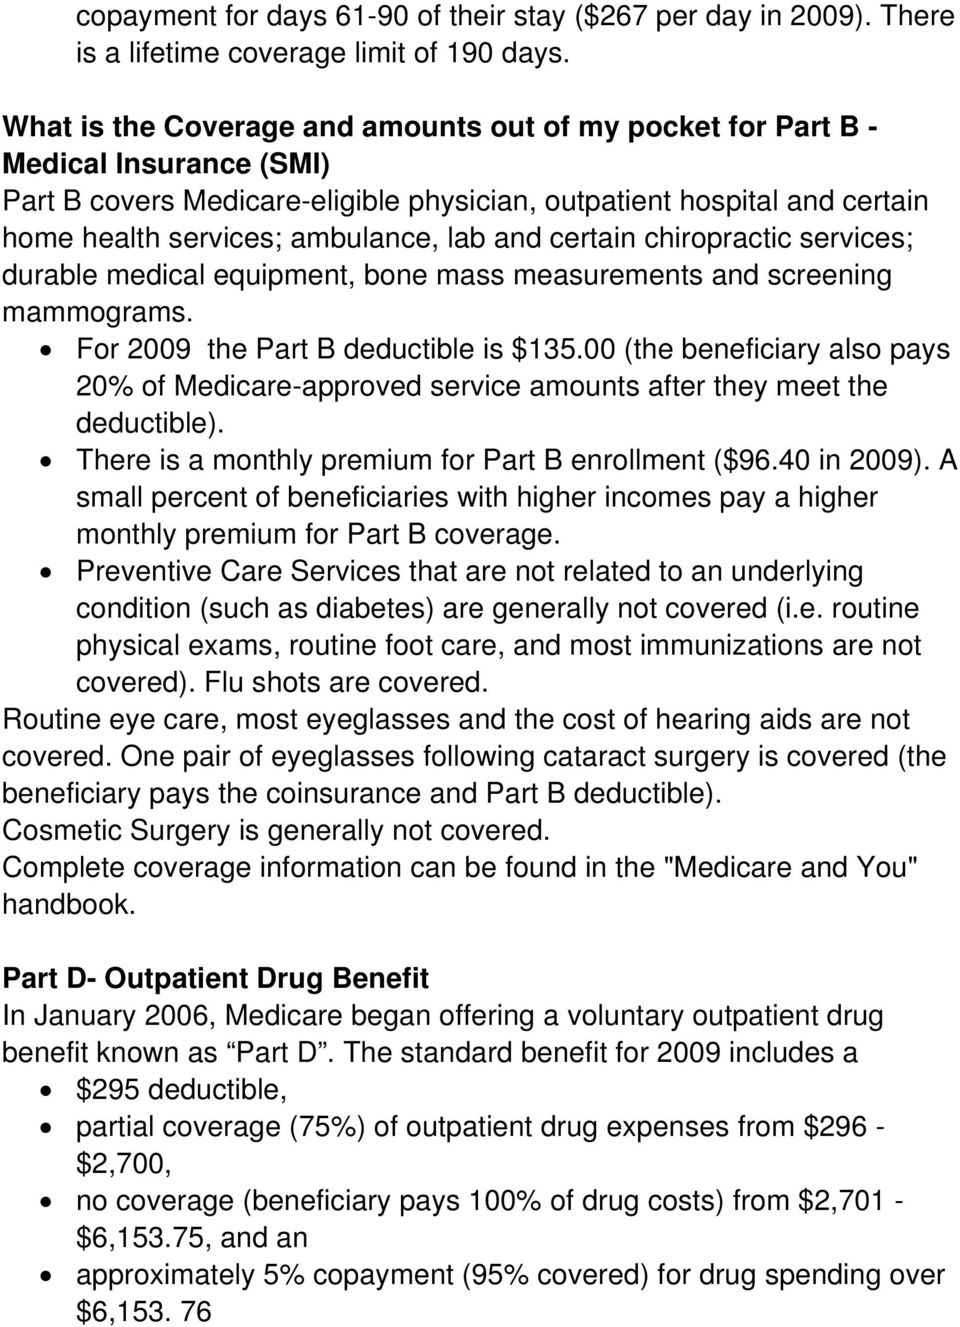 and certain chiropractic services; durable medical equipment, bone mass measurements and screening mammograms. For 2009 the Part B deductible is $135.